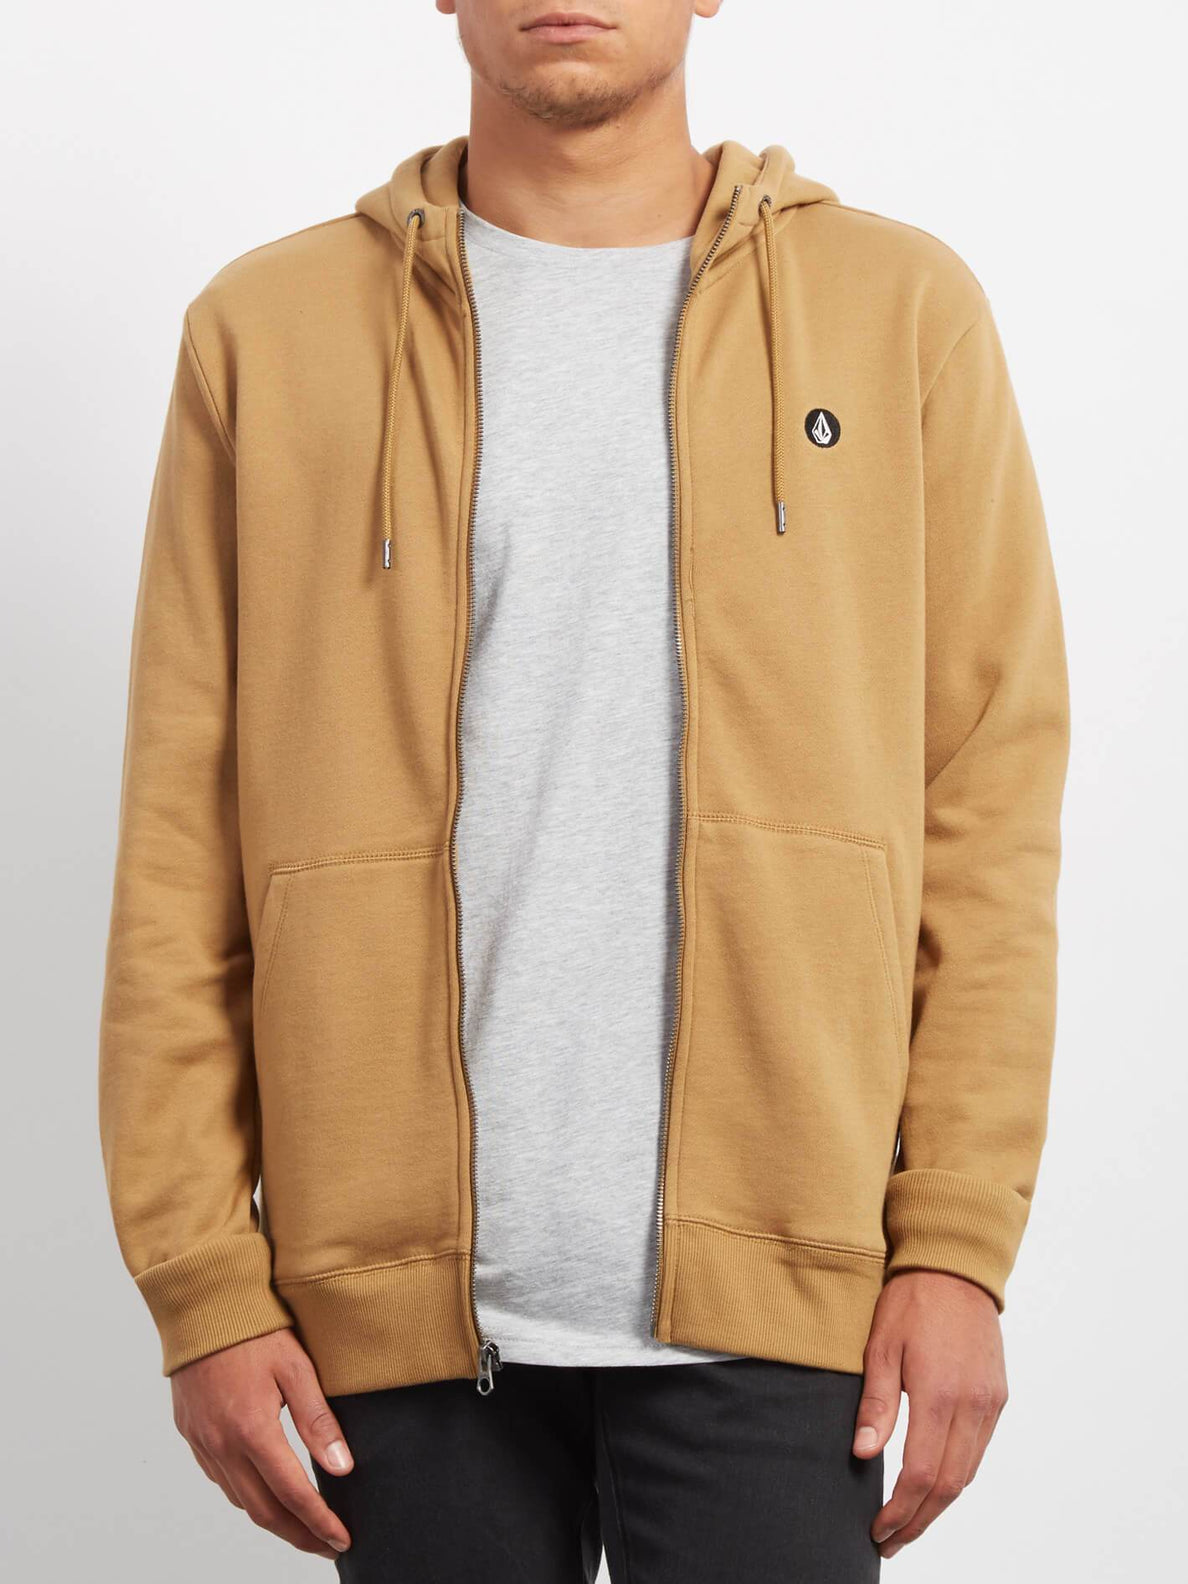 Sweat Sngl Stn Zip - Old Gold